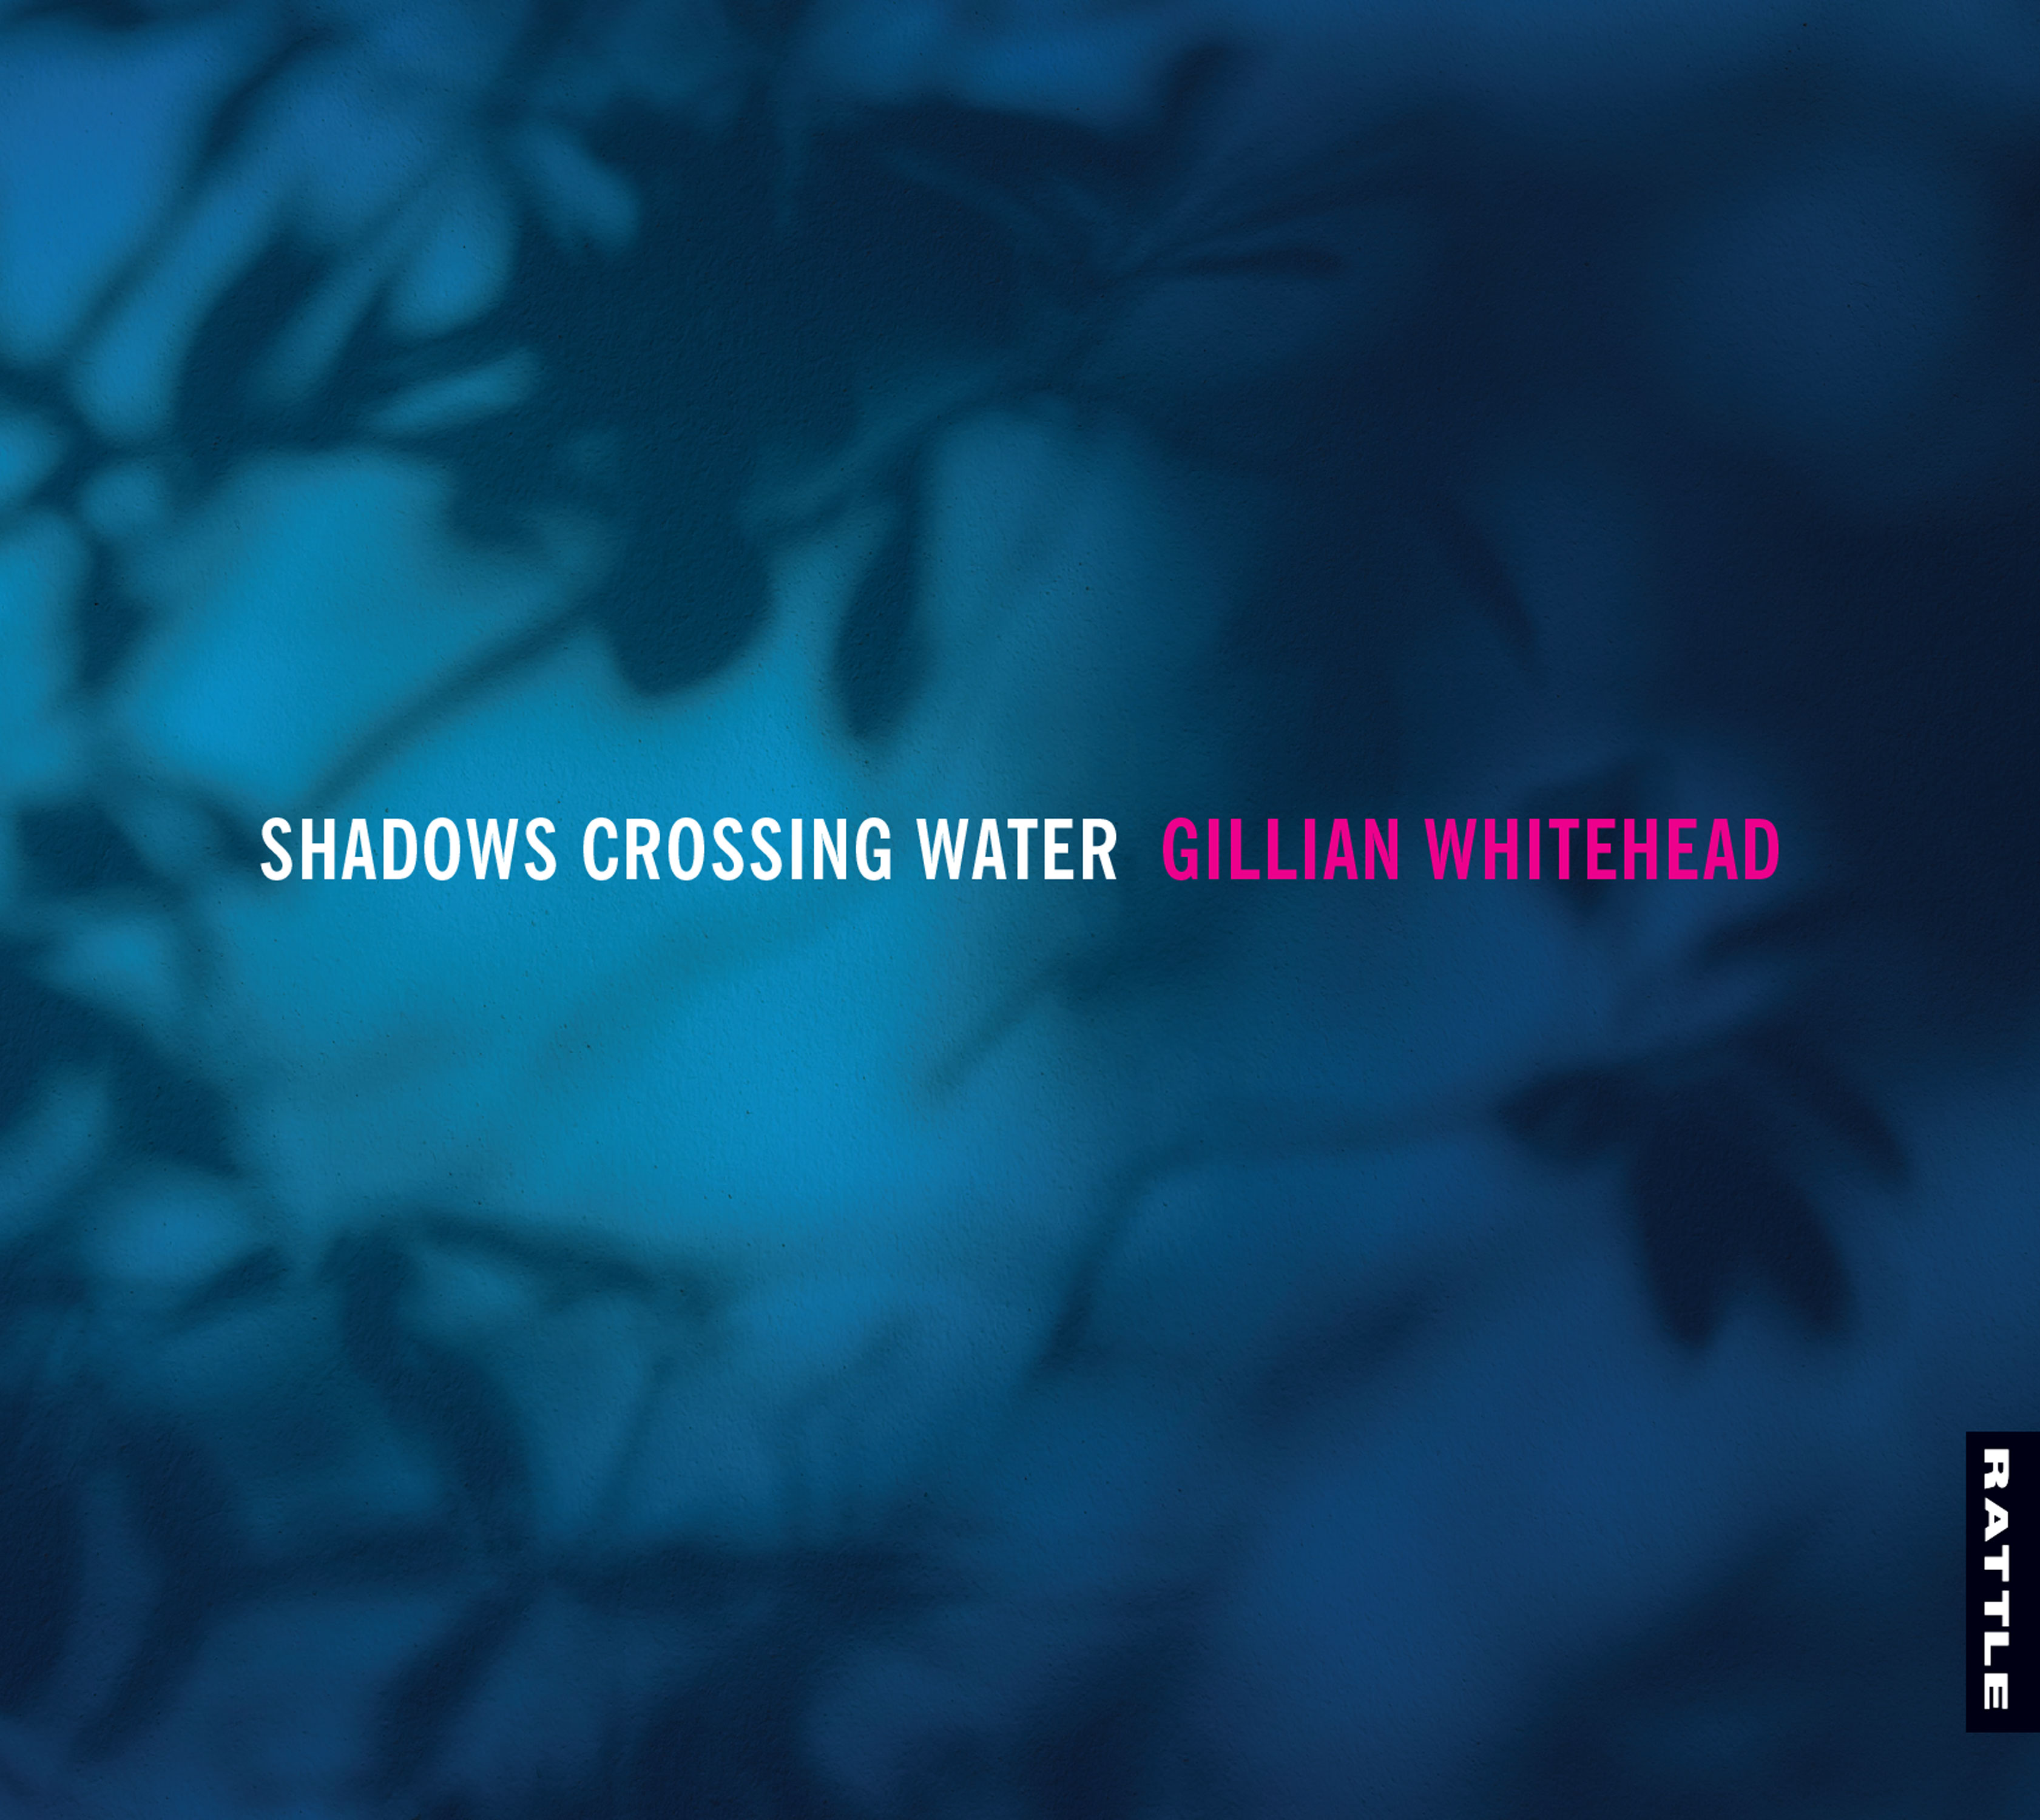 Gillian Whitehead | Shadows Crossing Water - downloadable MP3 ALBUM